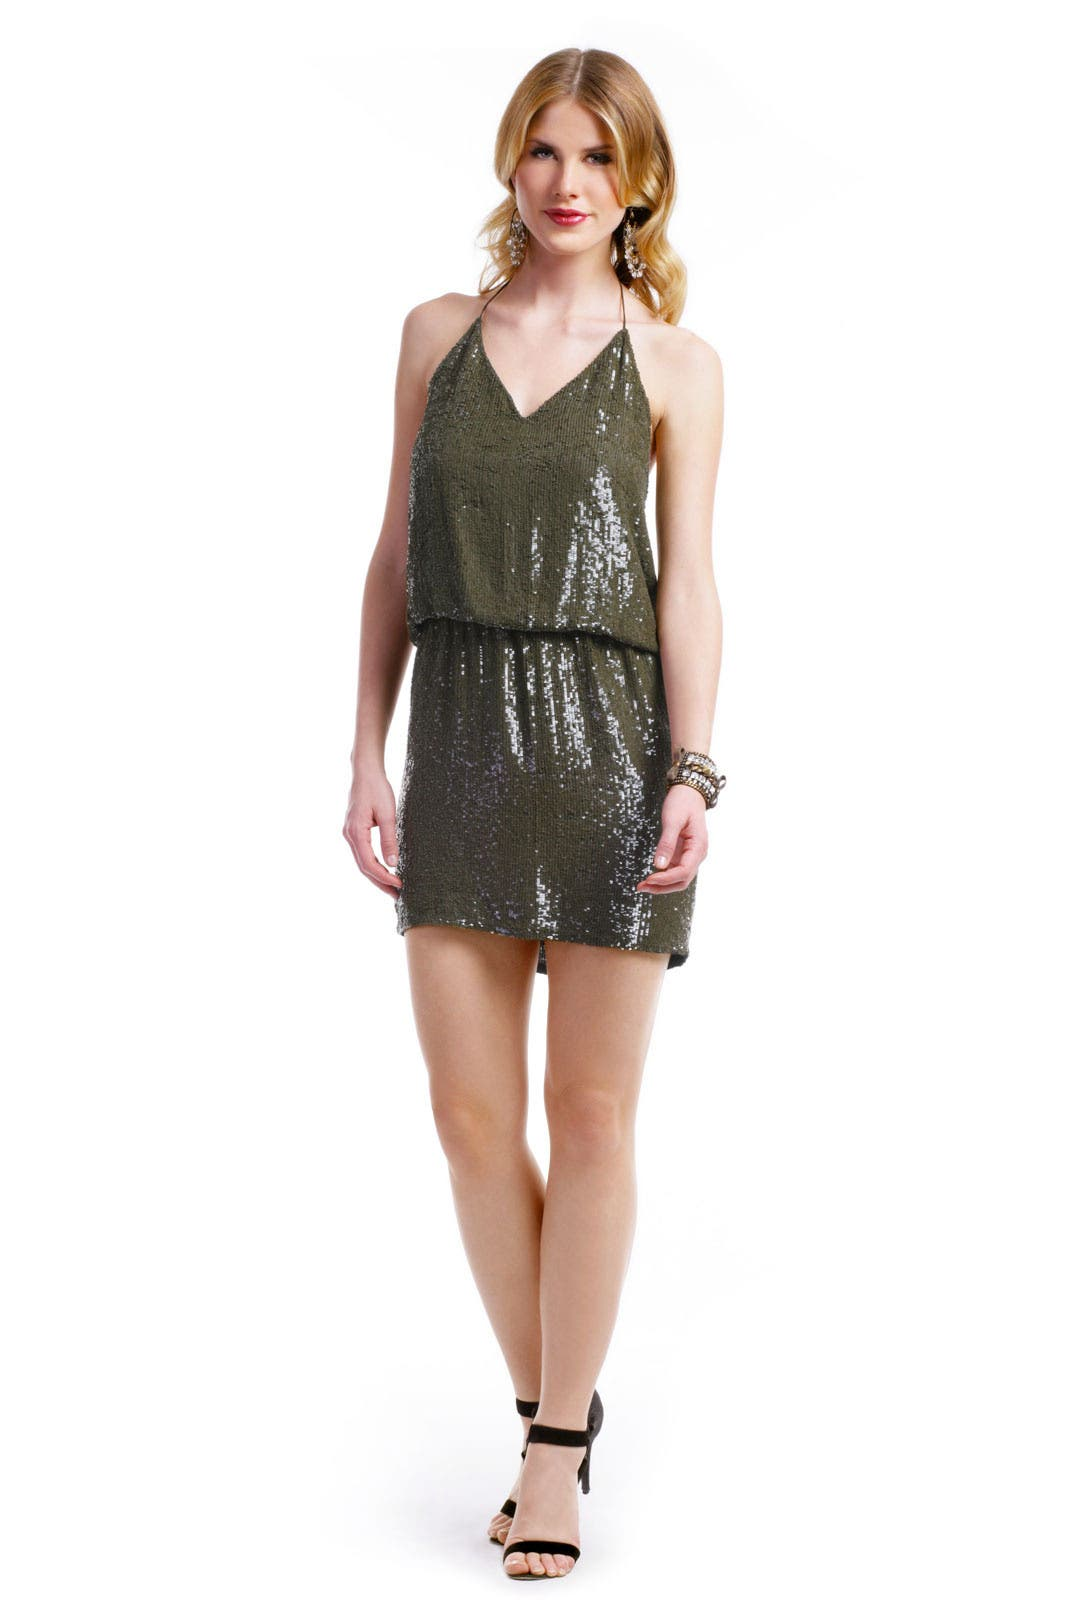 Dirty Martini Dress by Haute Hippie